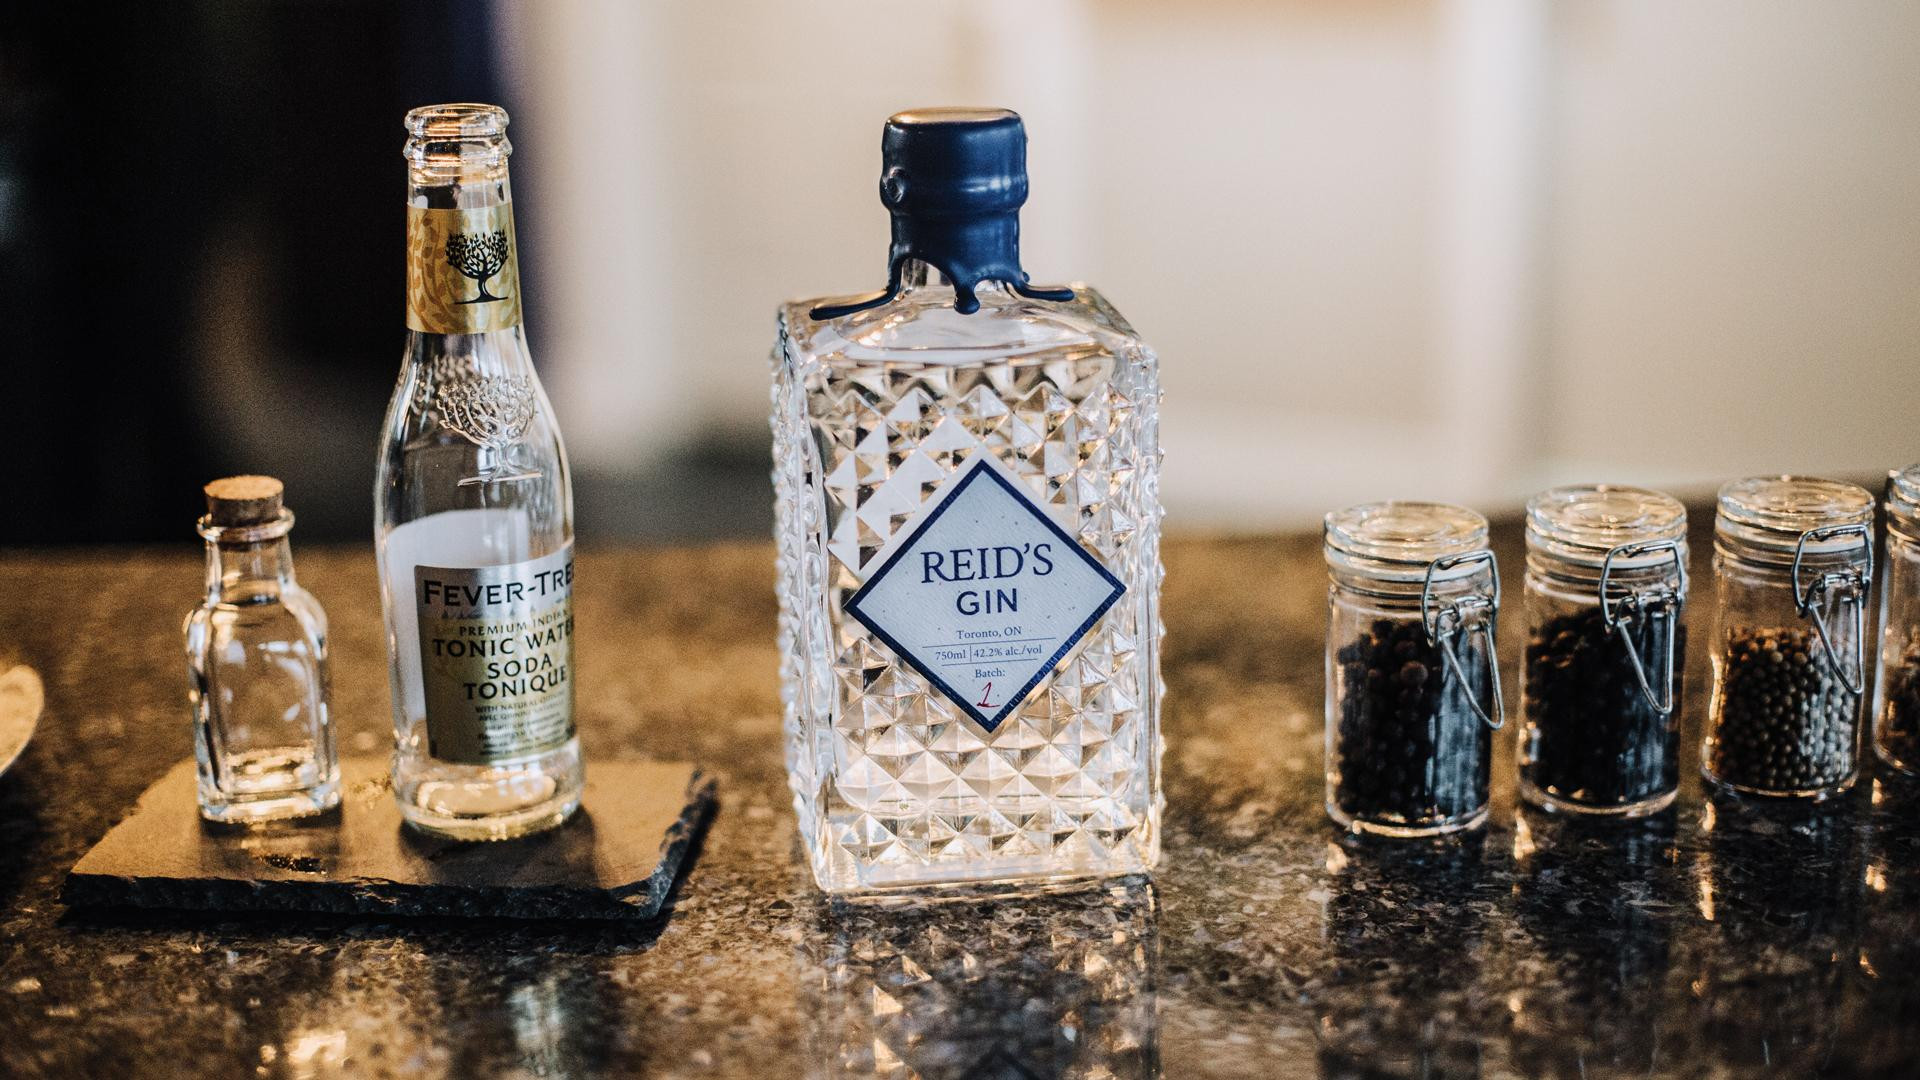 Alcohol delivery in Toronto | Gin from Reid's Distillery in Toronto